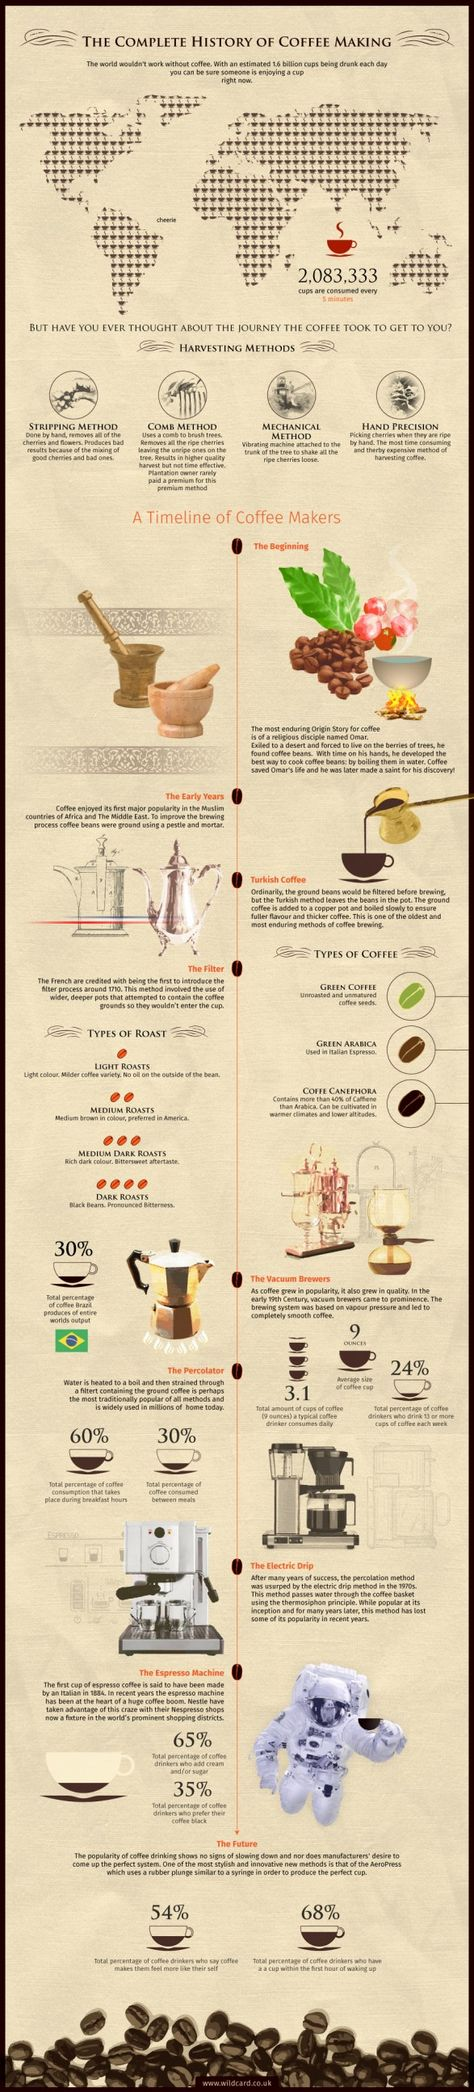 the characteristics of coffee and the history of coffee making The origin and history of coffee date back to the 10th century  the best indian coffee reaches the flavour characteristics of pacific coffees.